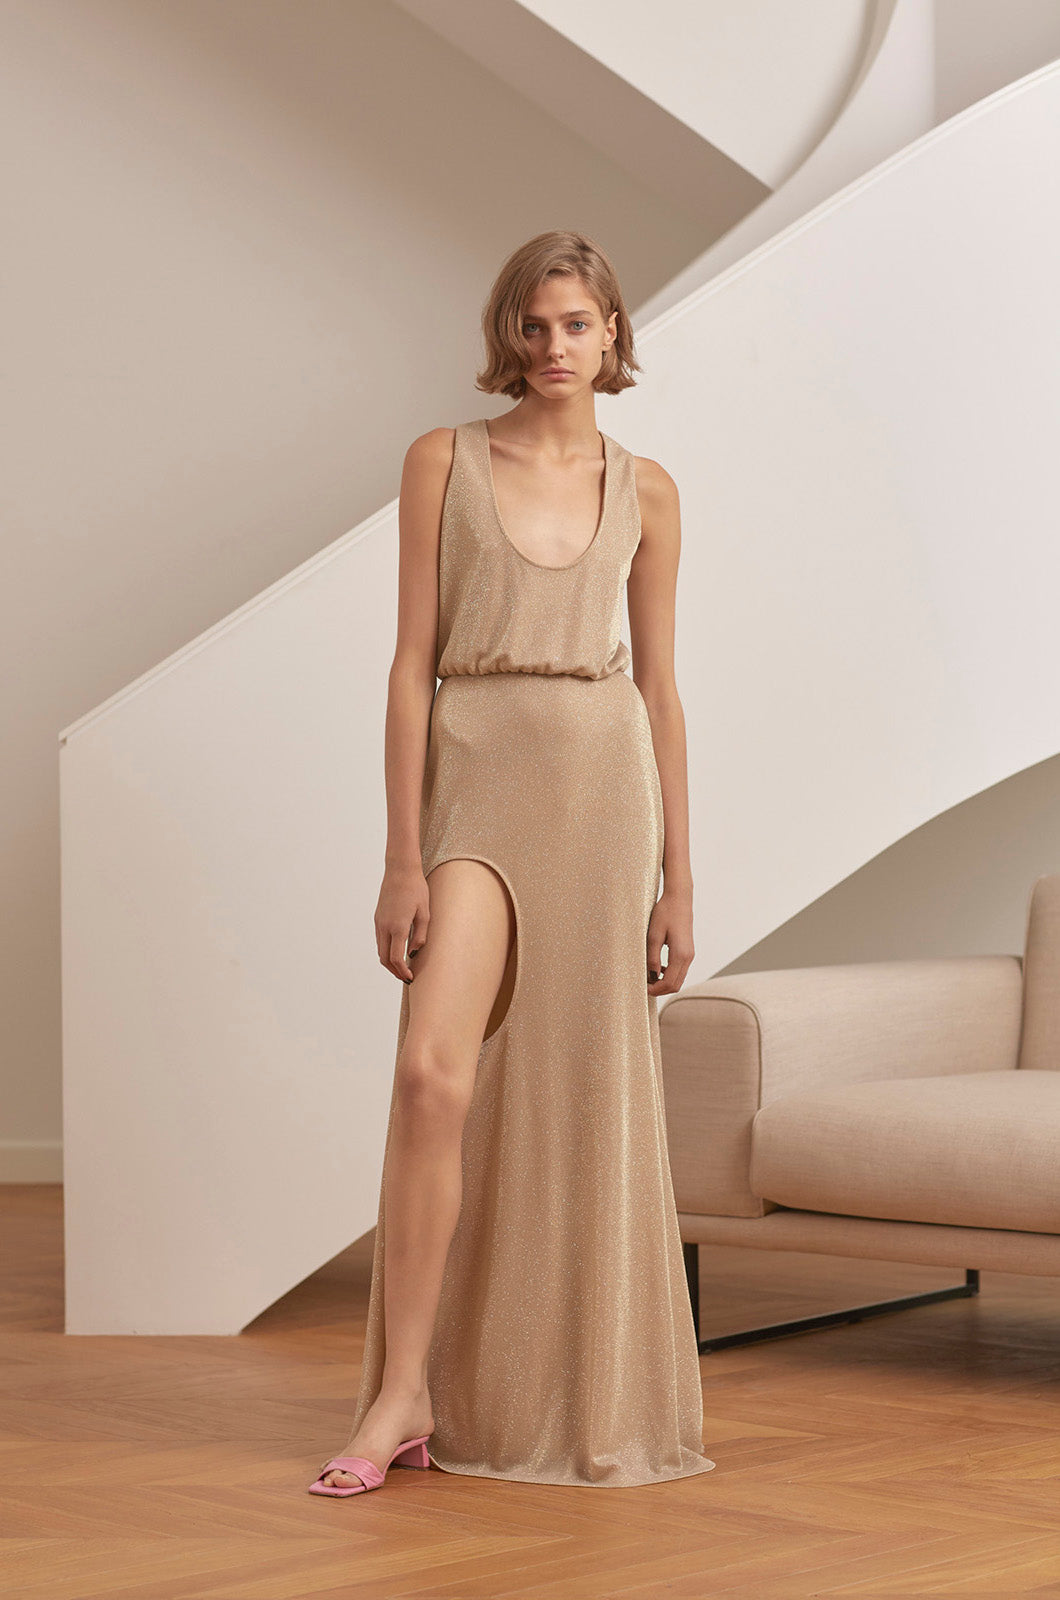 Golden maxi dress with leg cut-out